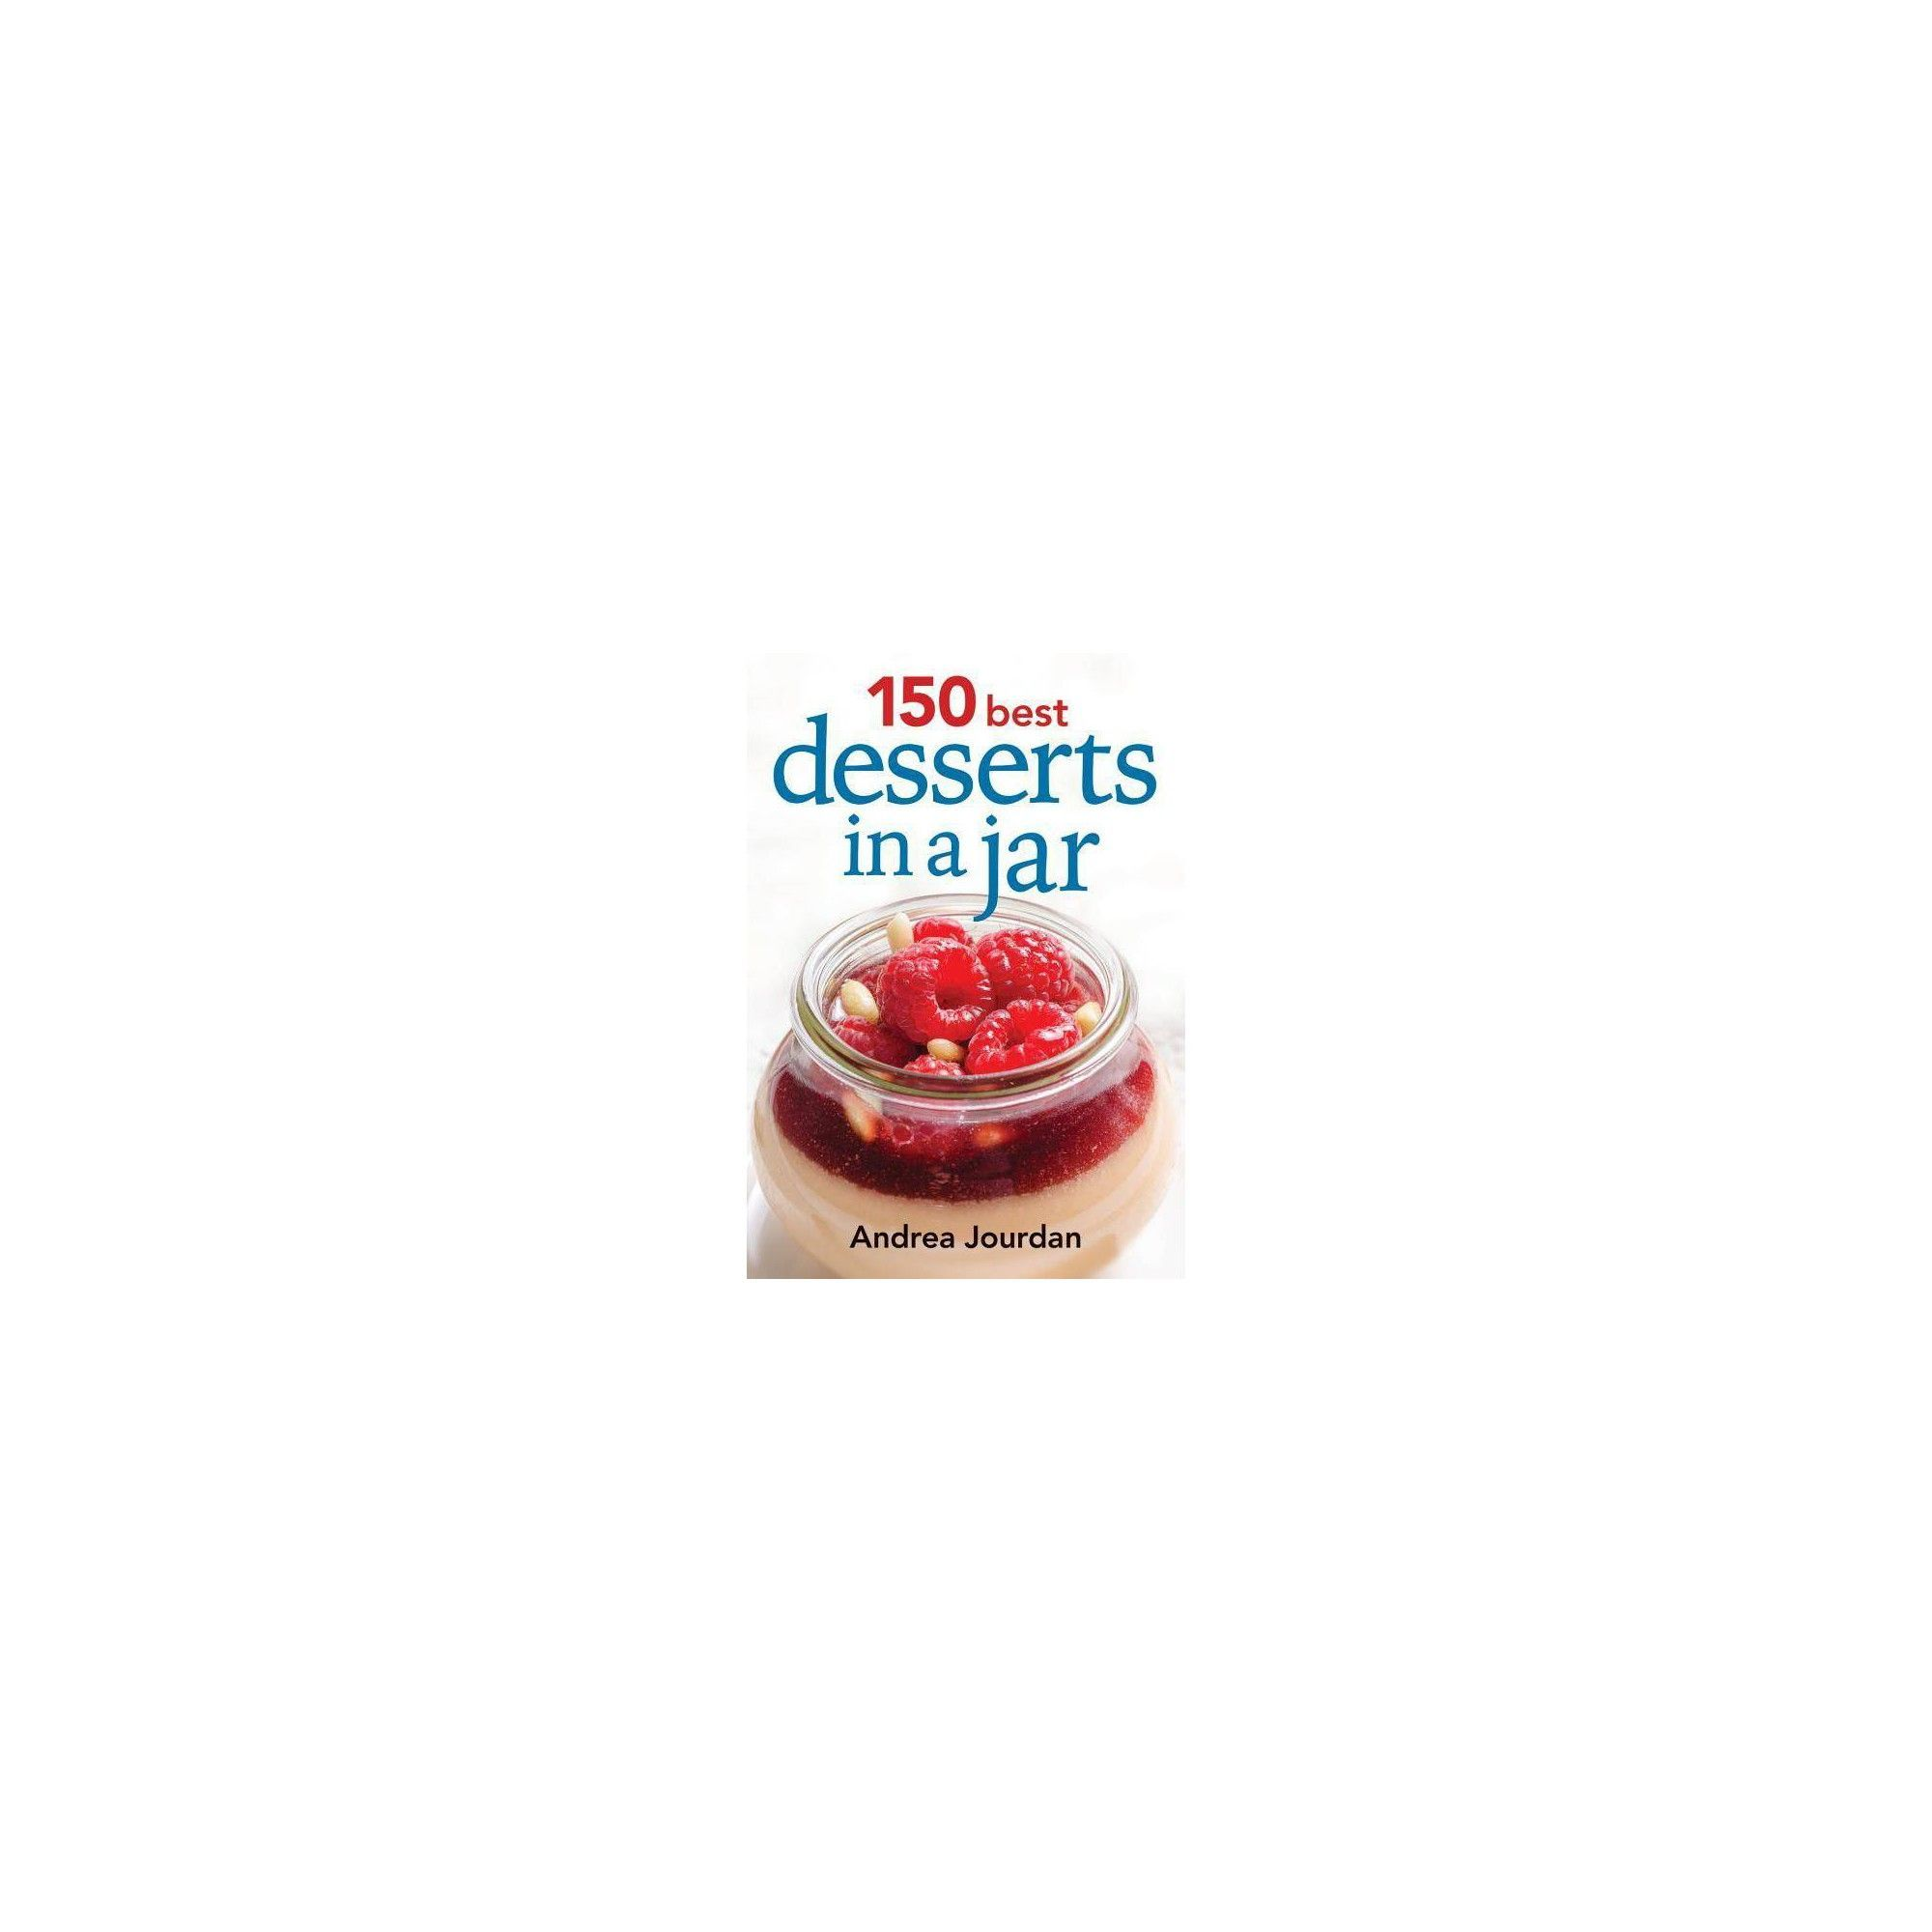 150 Best Desserts in a Jar - by Andrea Jourdan (Paperback) #peachcobblercheesecakeinajar 150 Best Desserts in a Jar - by Andrea Jourdan (Paperback) #peachcobblercheesecakeinajar